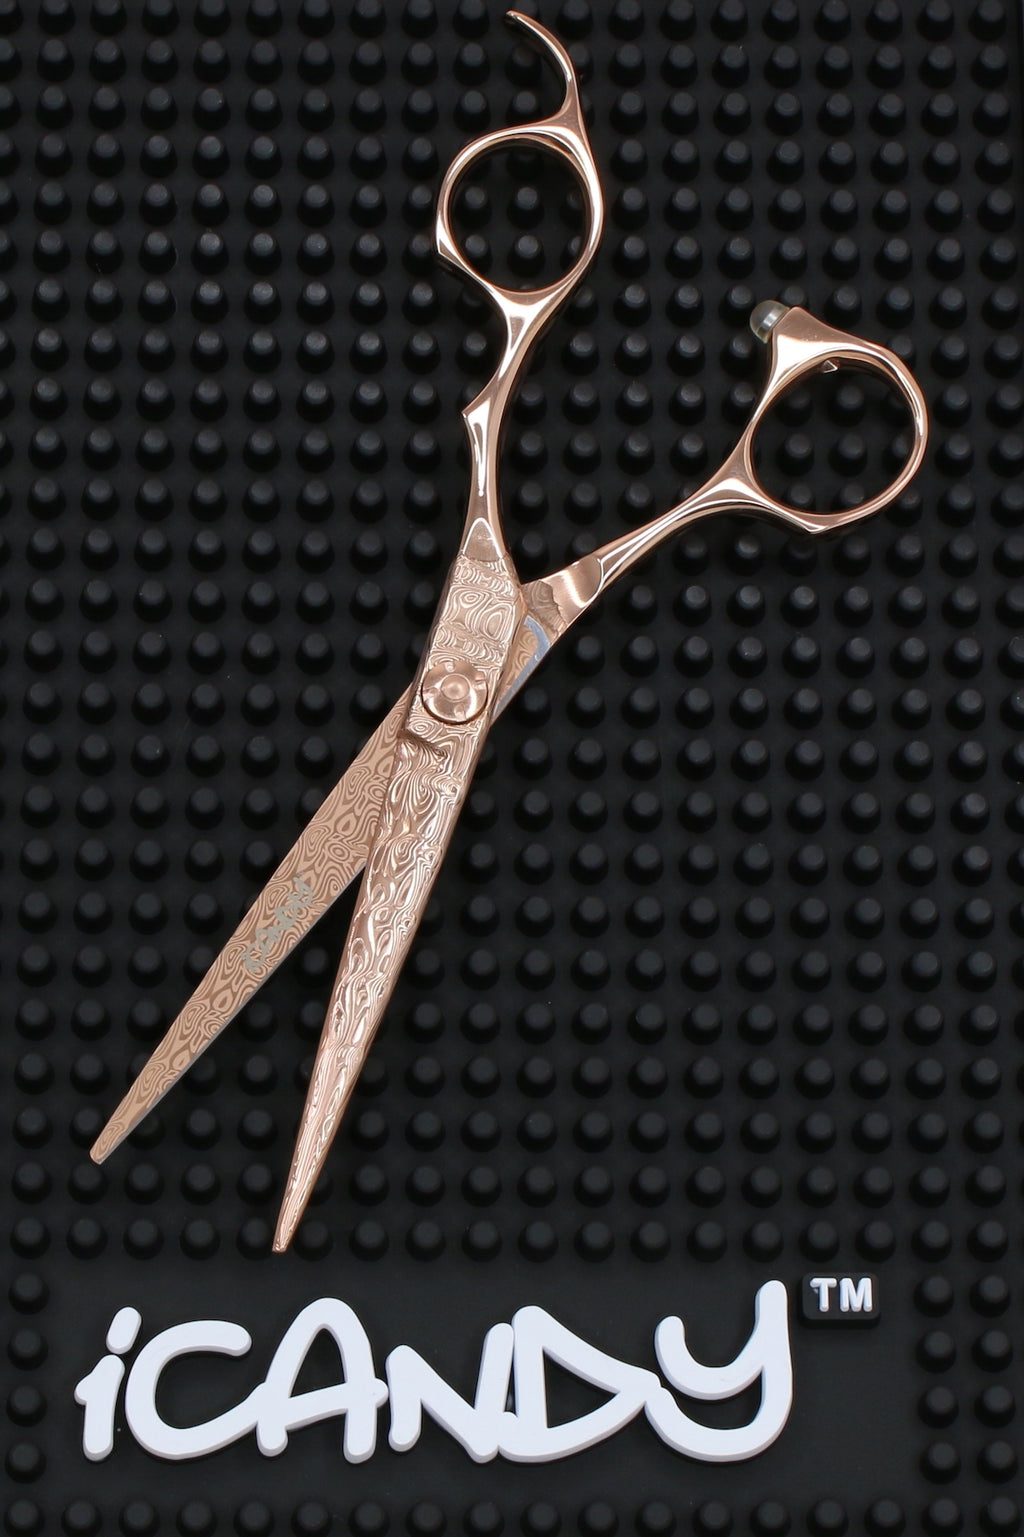 iCandy DAMA1 Damascus Rose Gold Scissors (6.0 inch) Limited Edition - iCandy Scissors